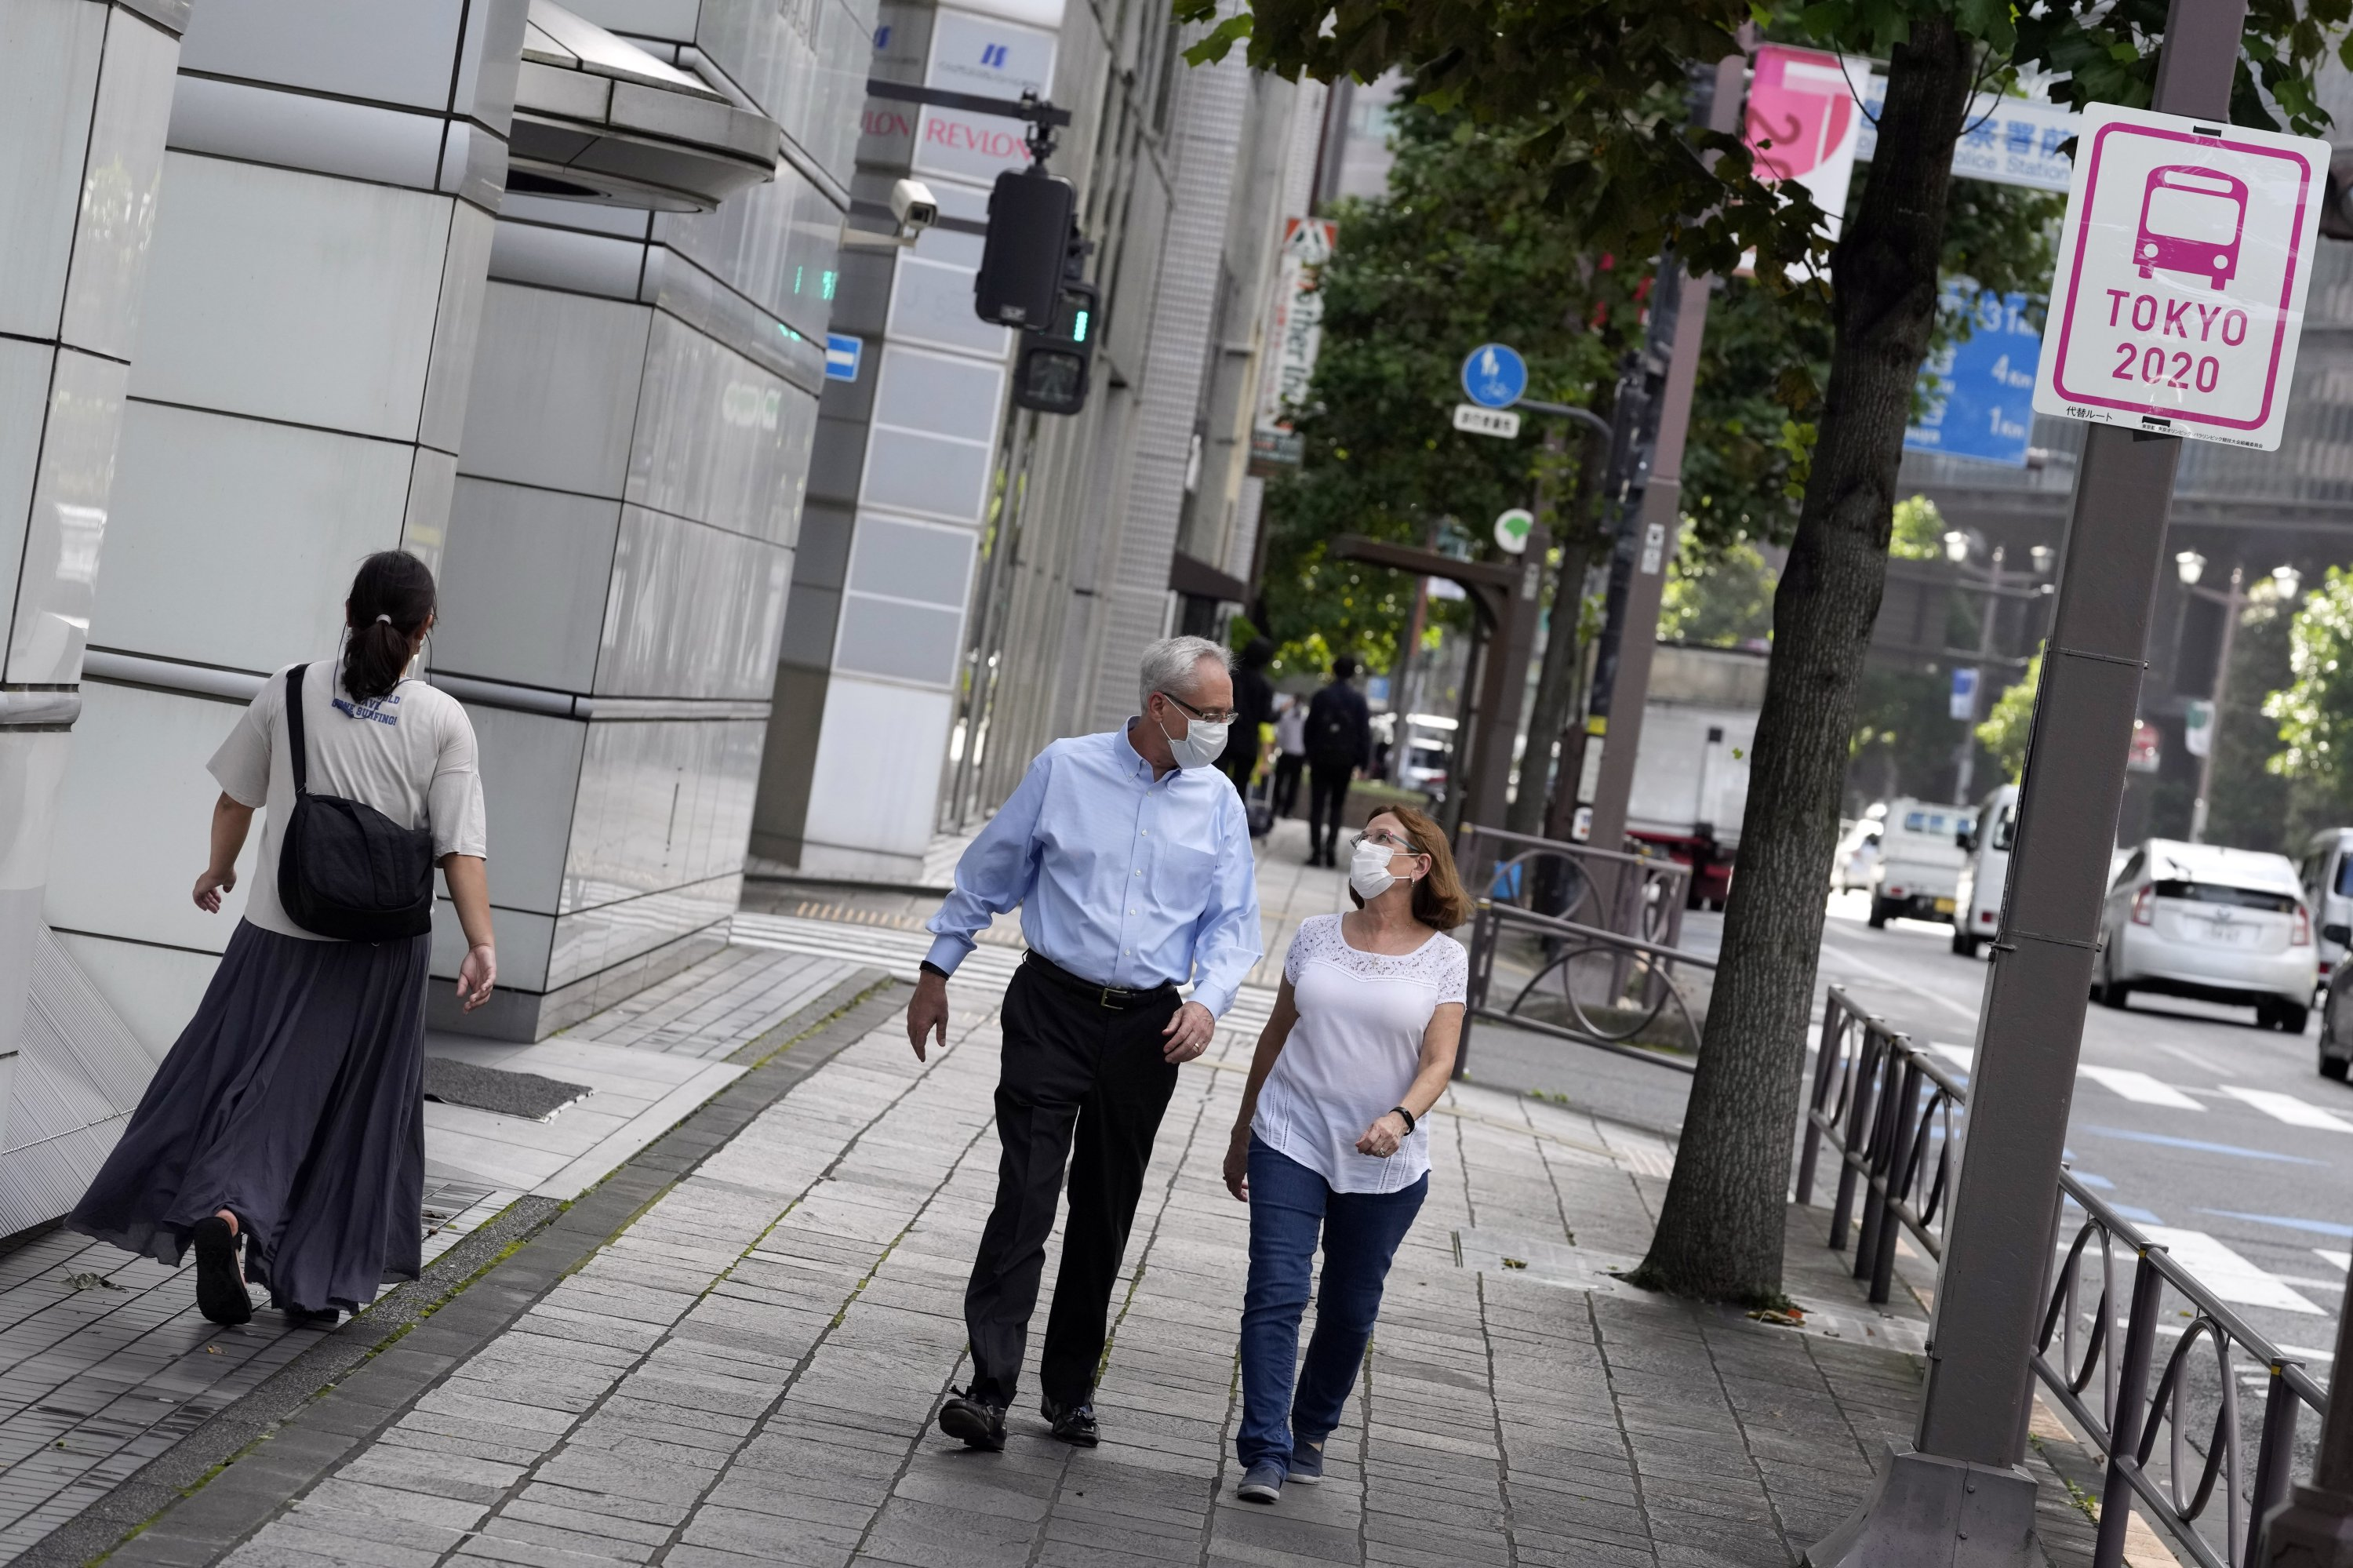 Former Nissan Motor Co. executive Greg Kelly and his wife, Dee Kelly, go for a walk in Tokyo, Japan, Aug. 18, 2021. (AP Photo)